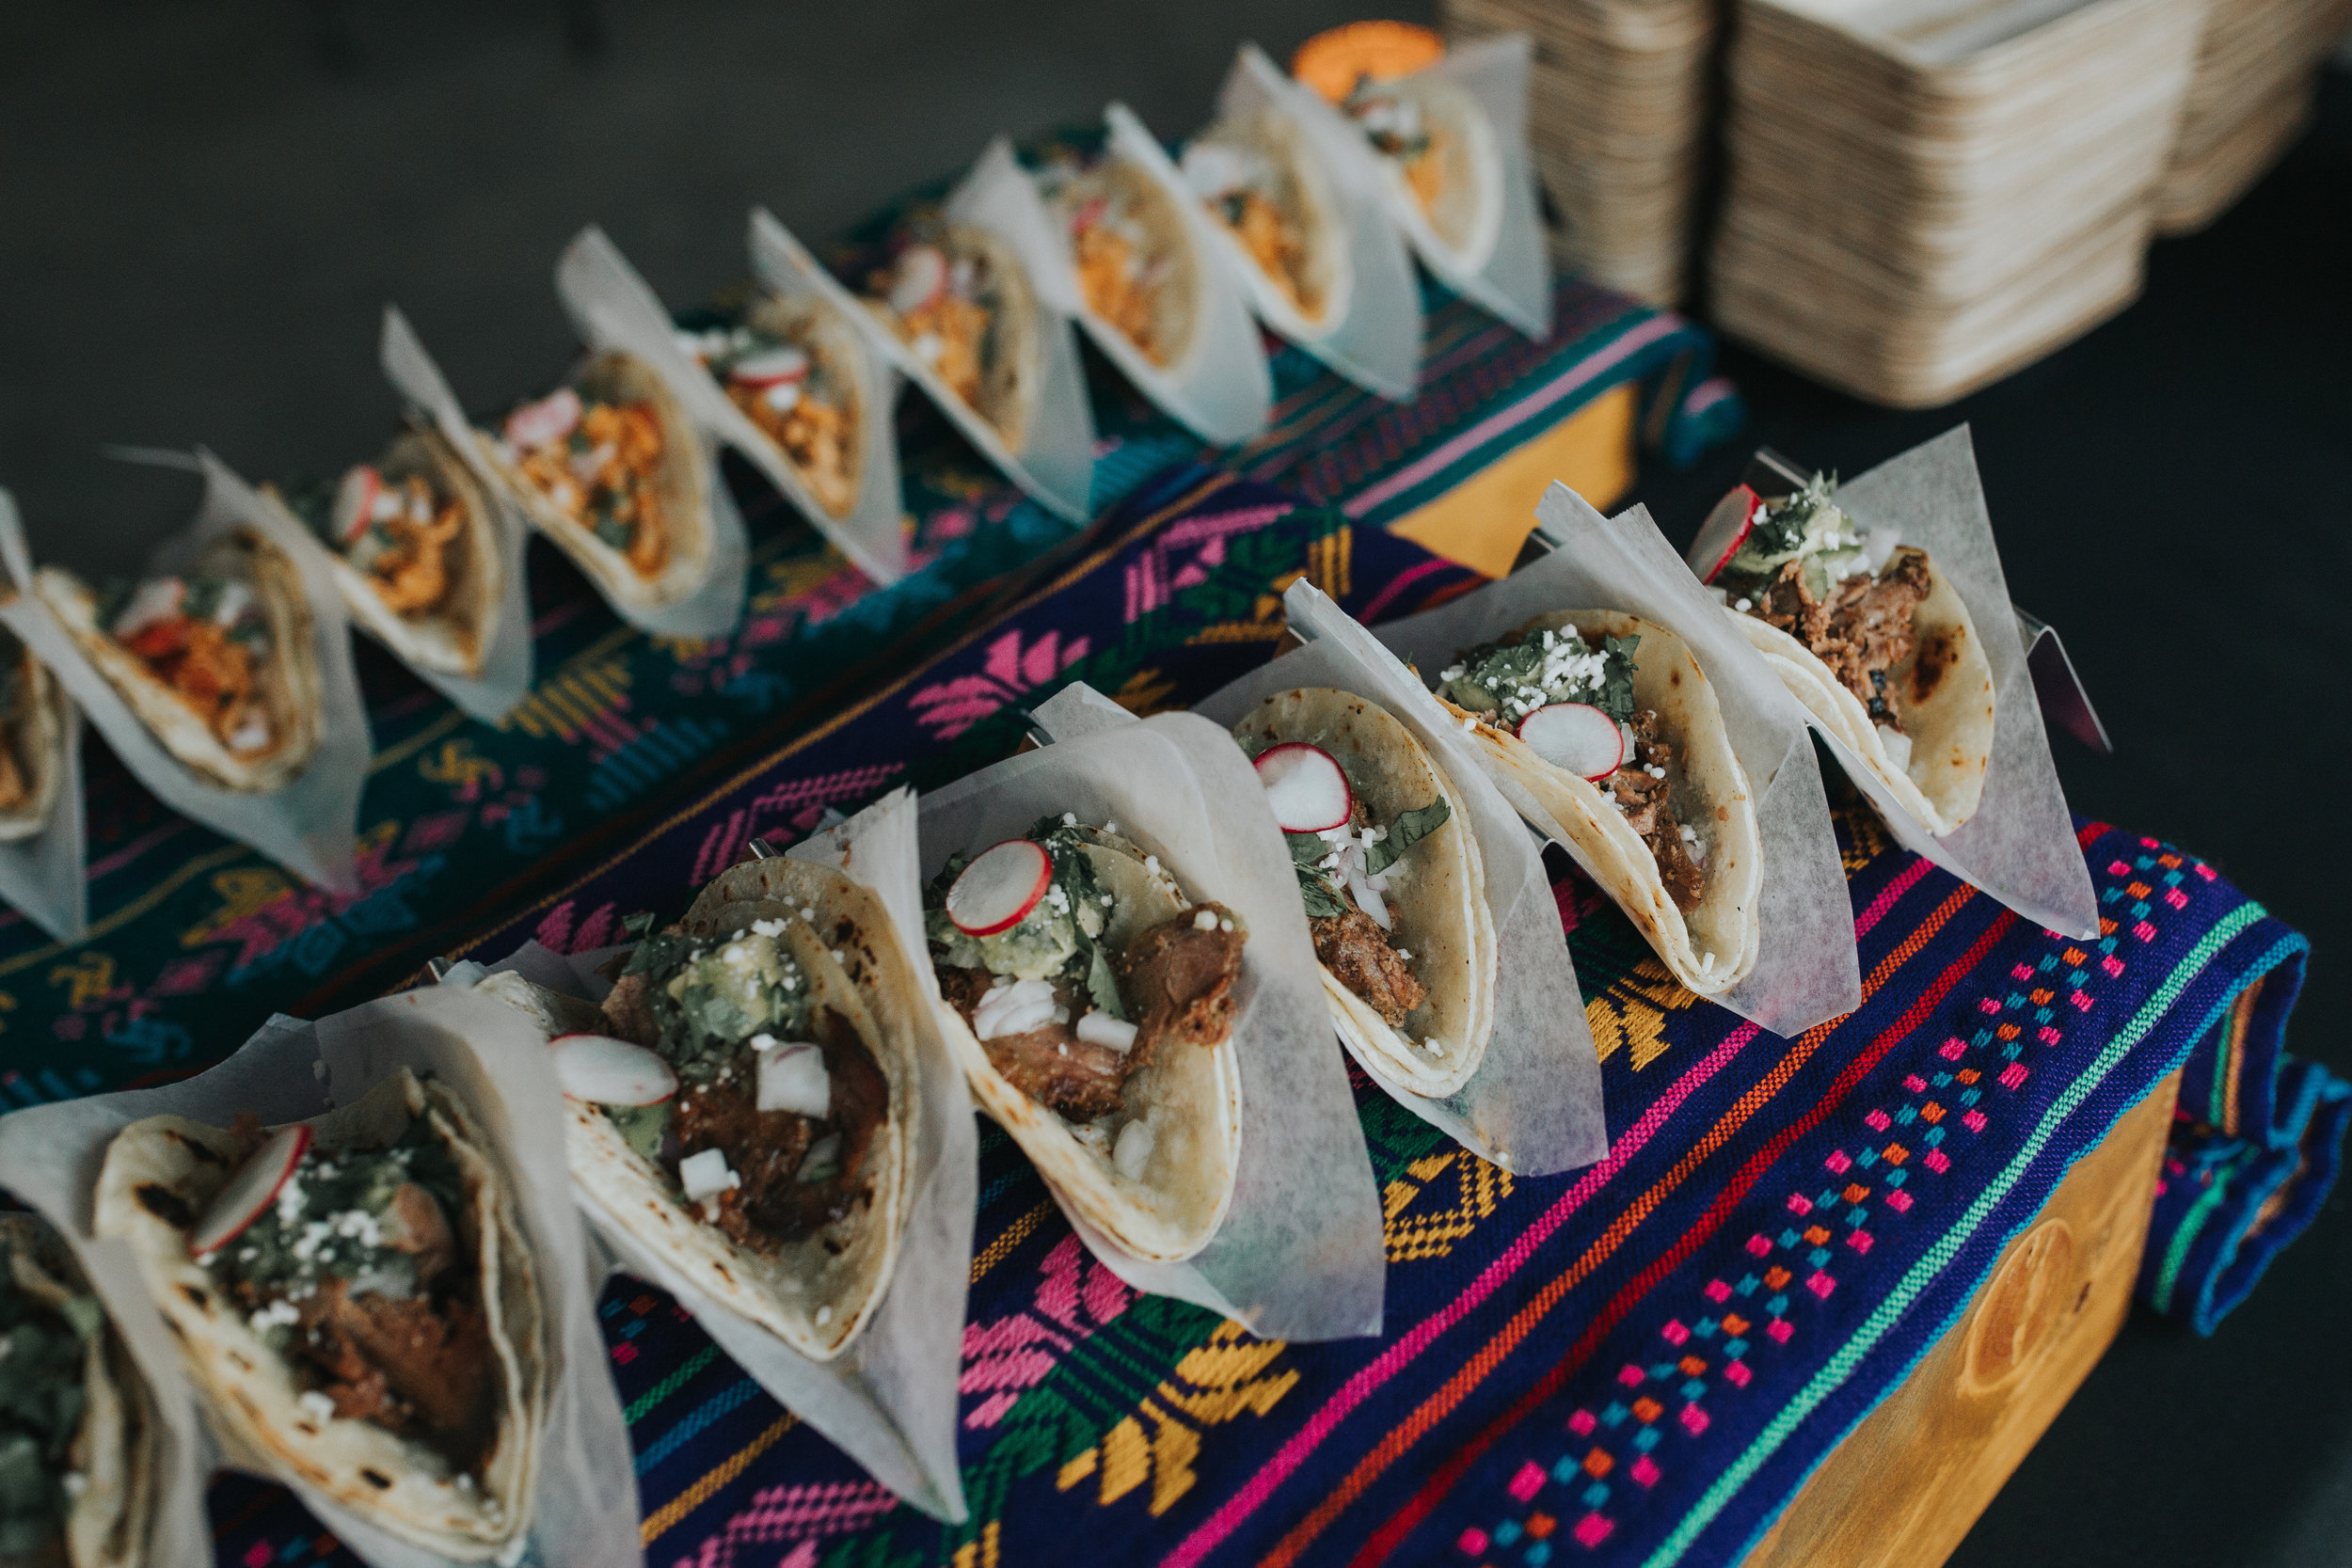 Capulet Bywater New Orleans Wedding Catering Taco Bar Display